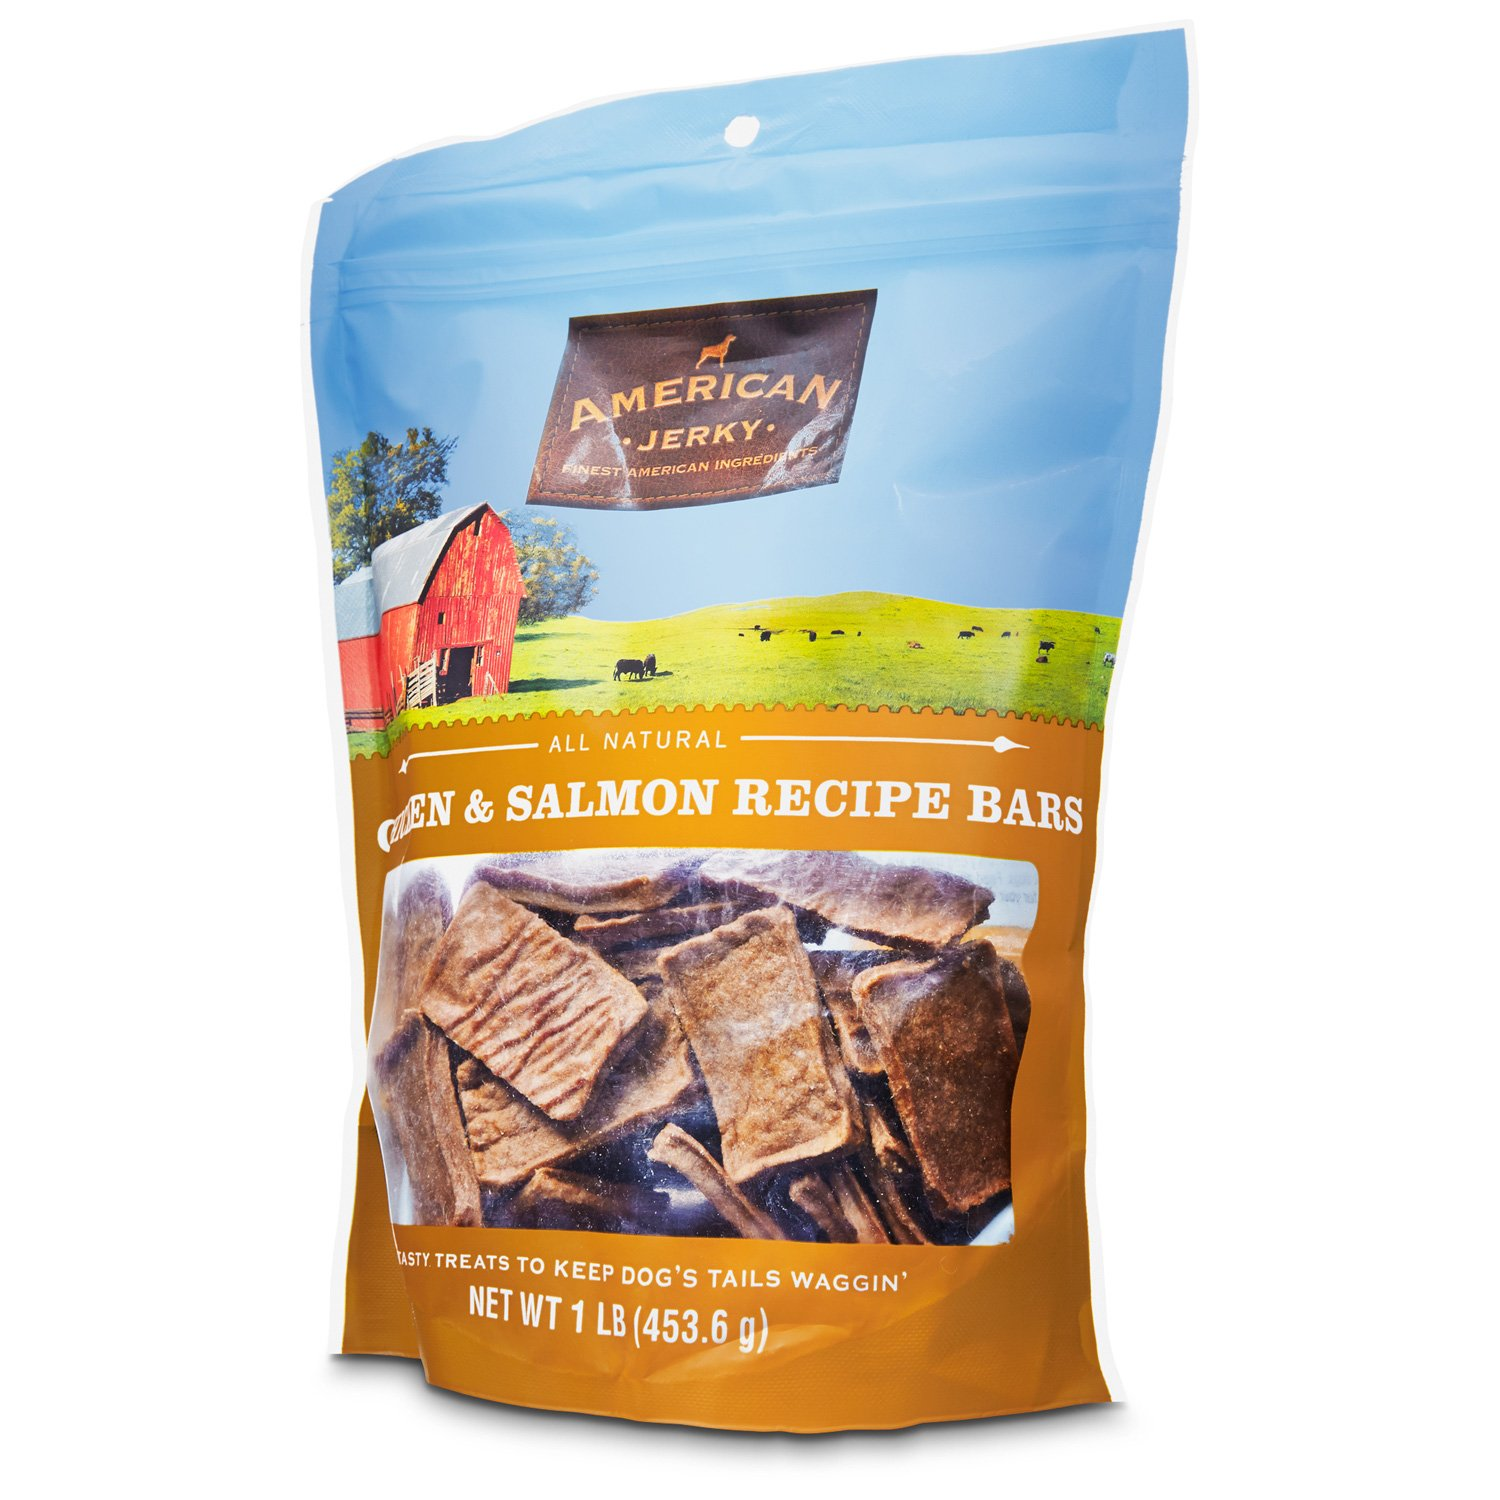 American Jerky Chicken & Salmon Recipe Bar Dog Treats